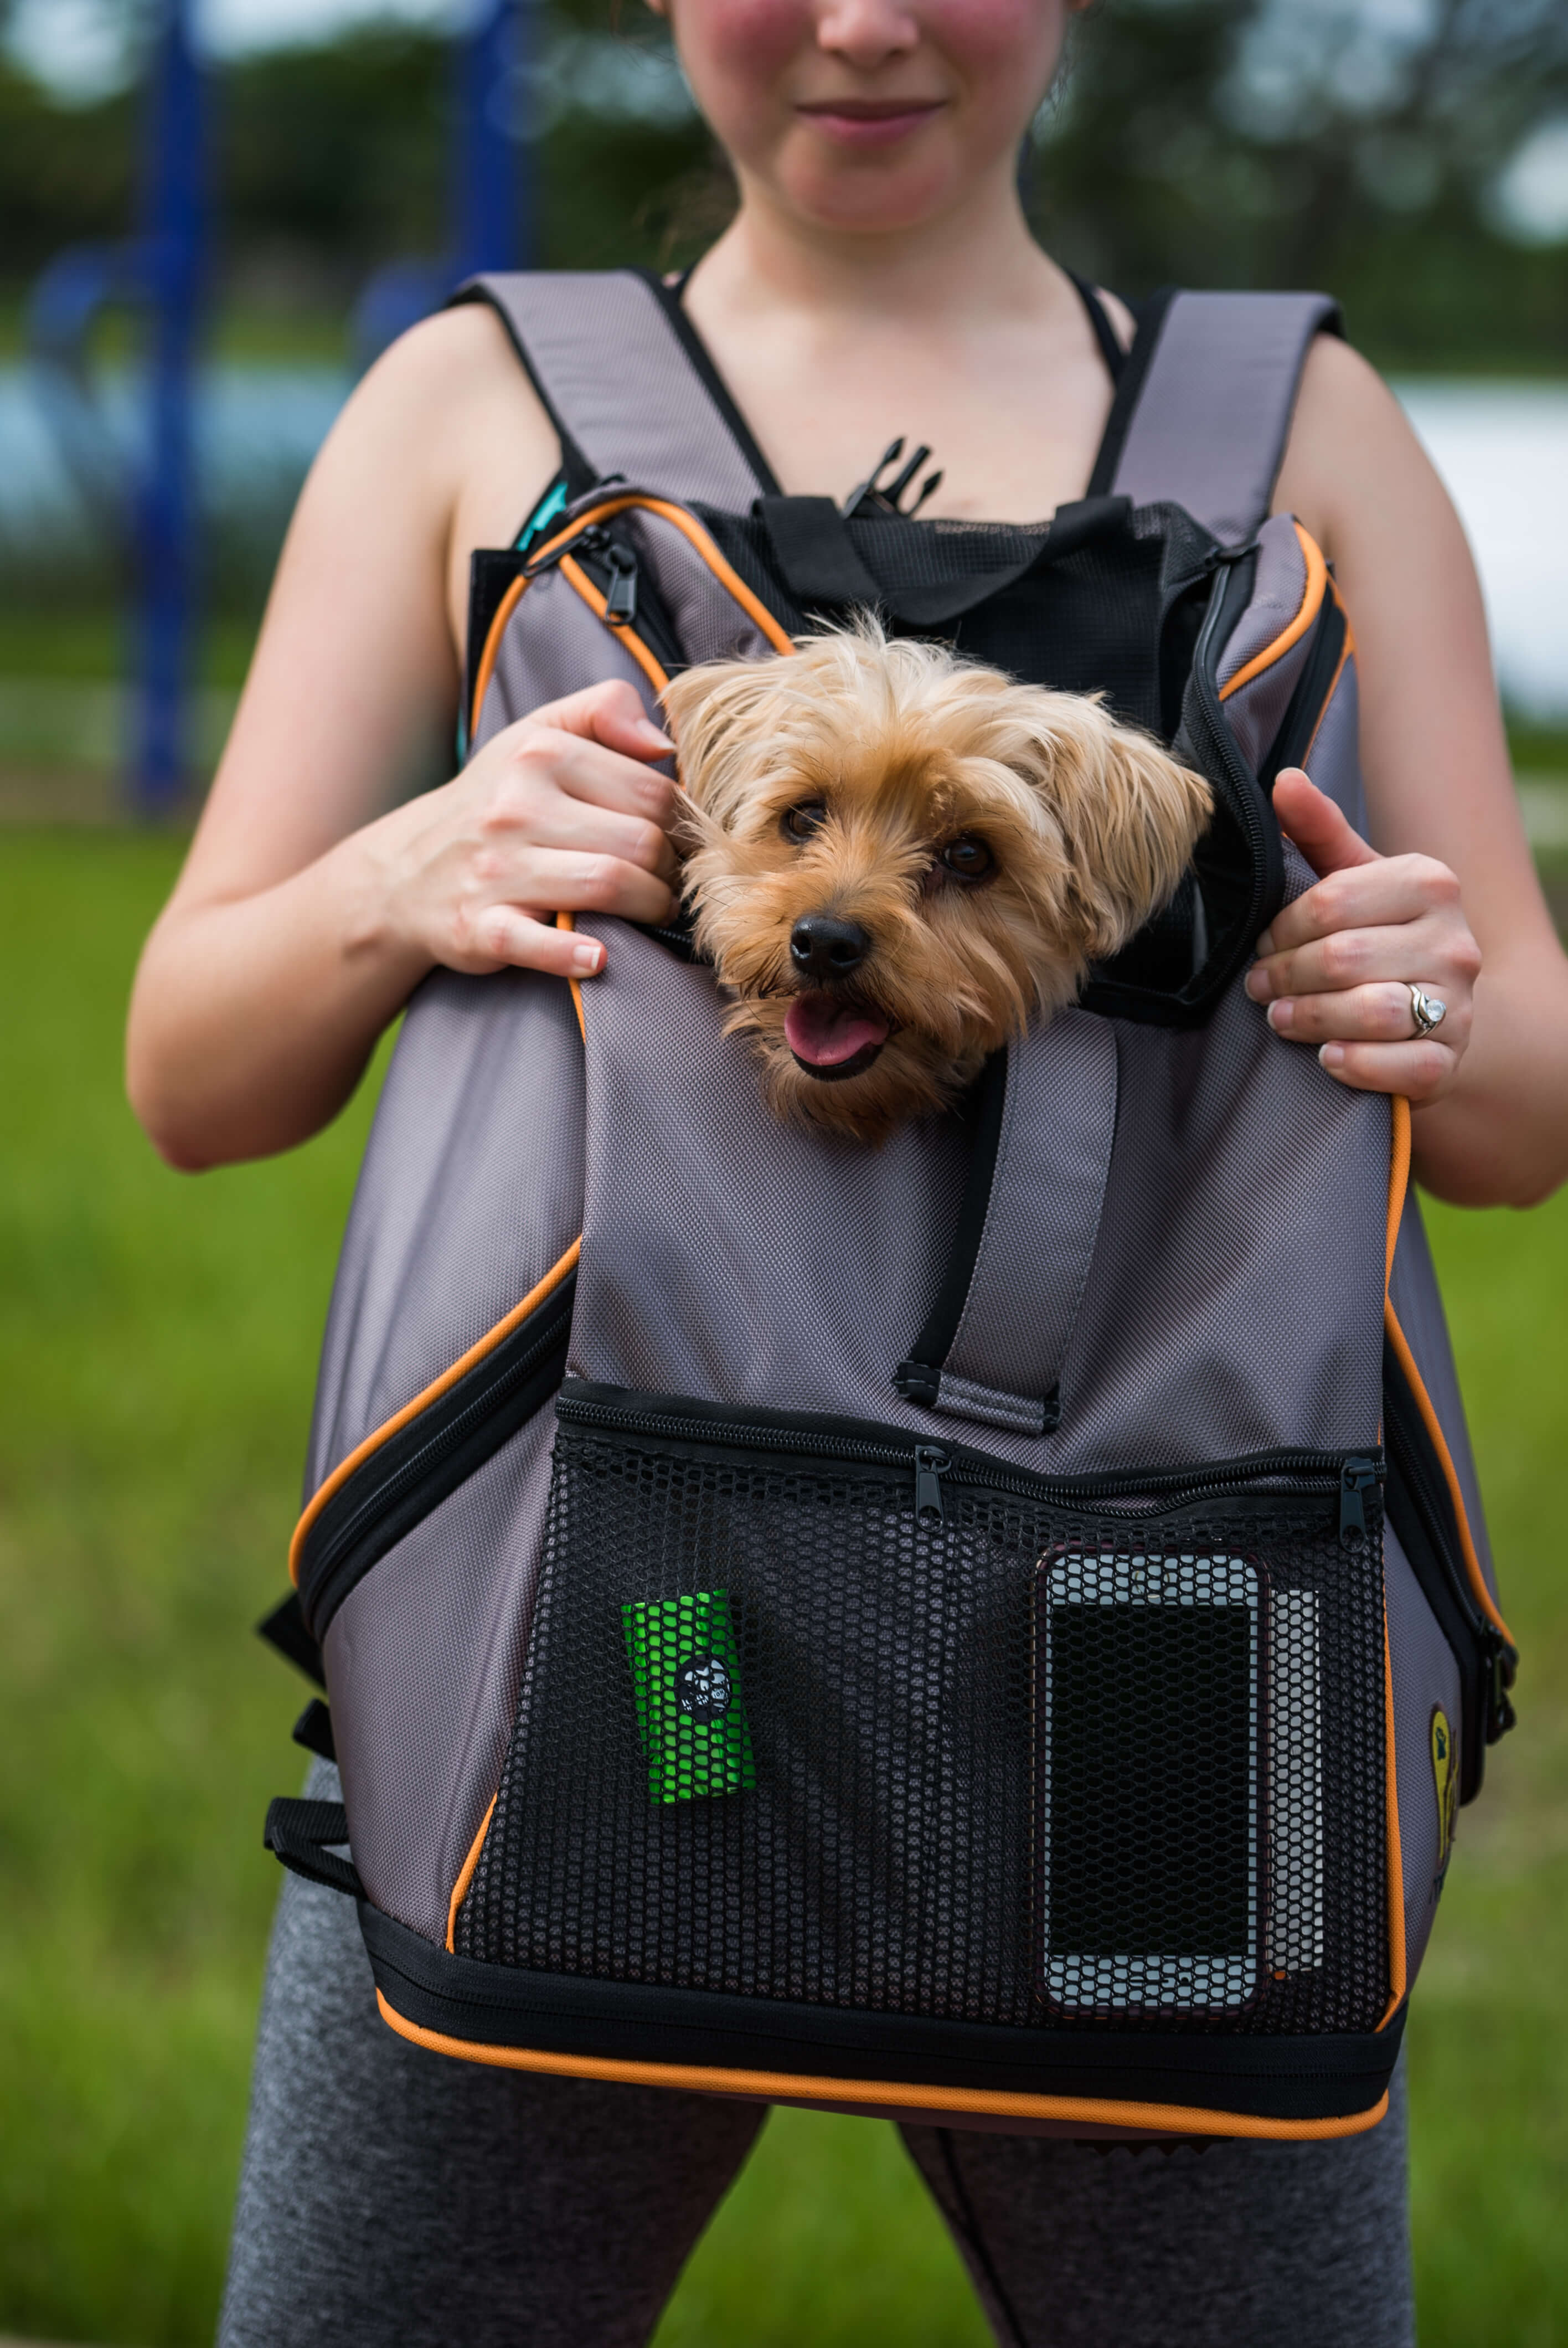 Dog Exercises with Lambo Backpack from Pet Magasin